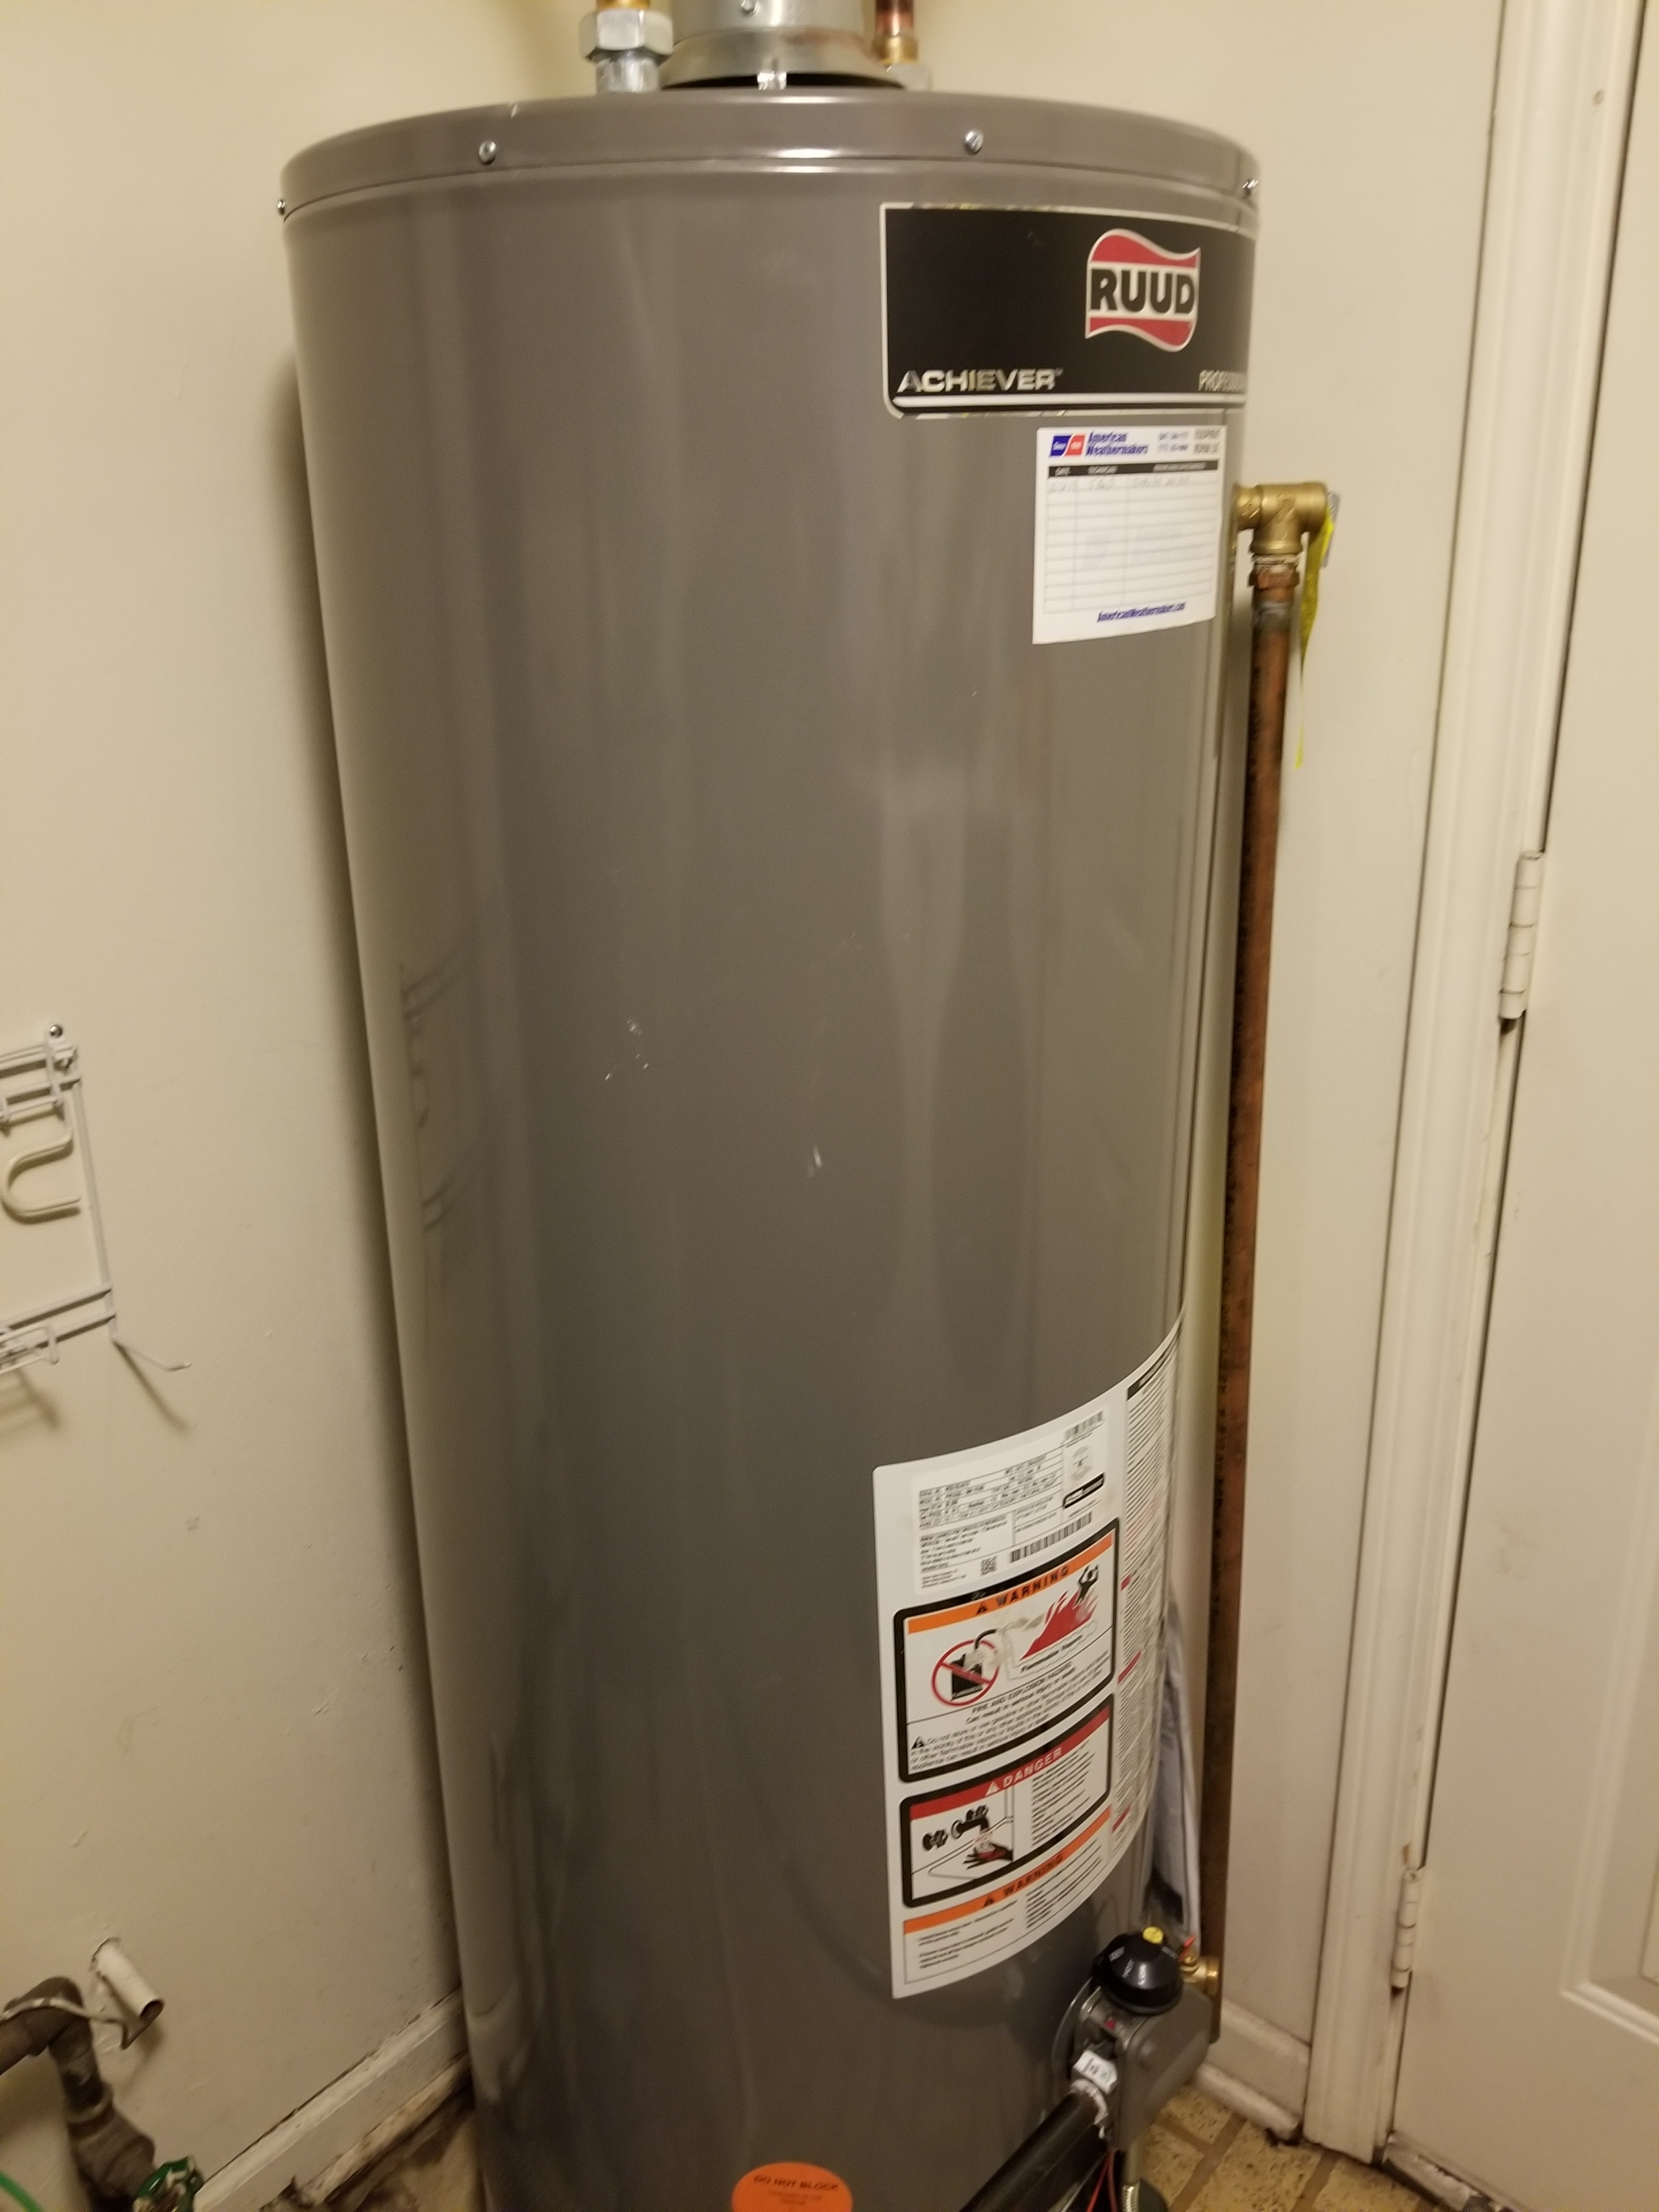 Install new Ruud water heater